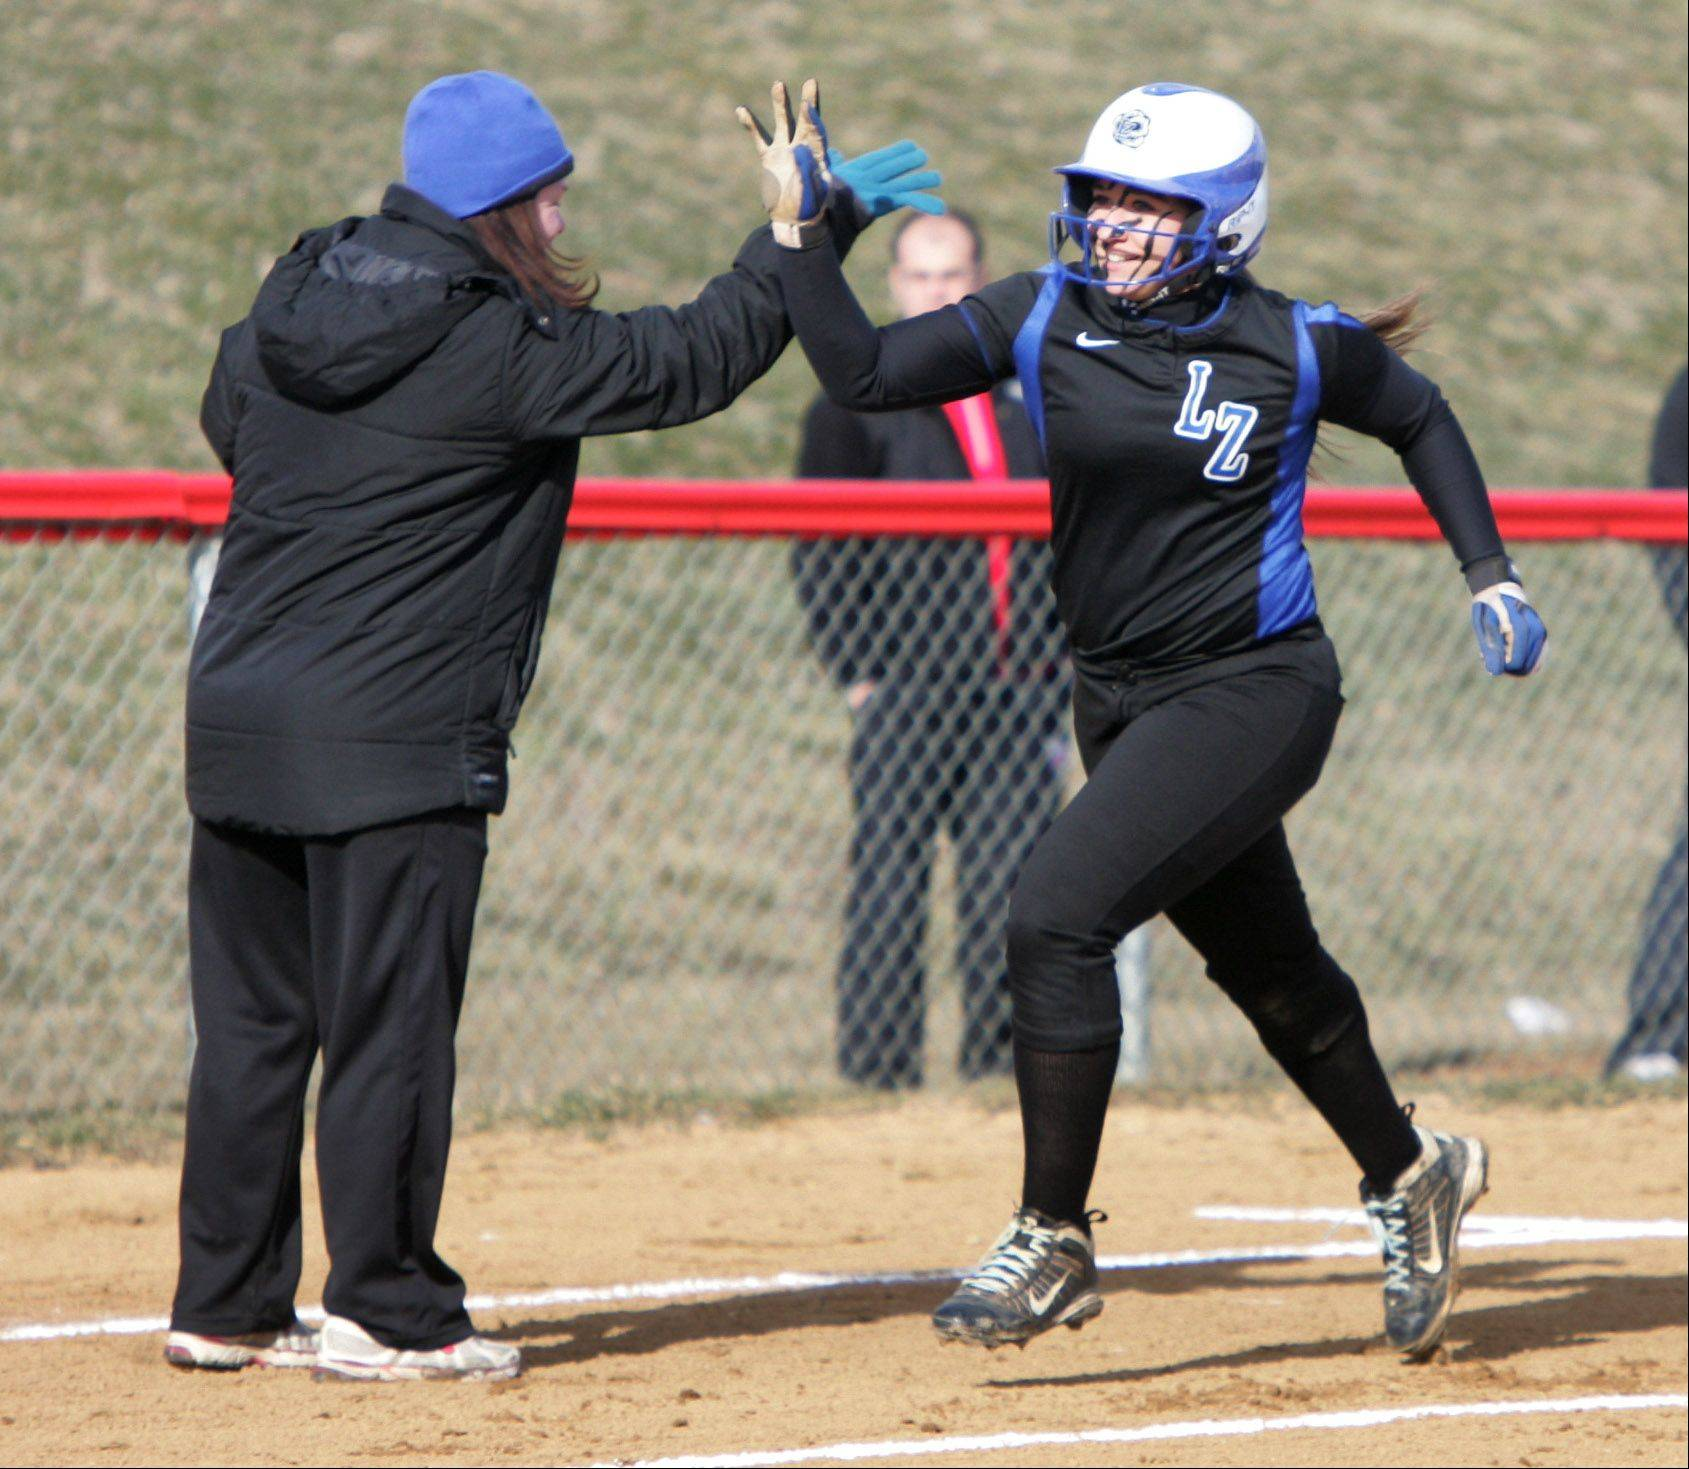 Lake Zurich hitter Maria Schroeder is congratulated as she rounds third base after hitting a 3-run homer in the first inning Tuesday at Mundelein.